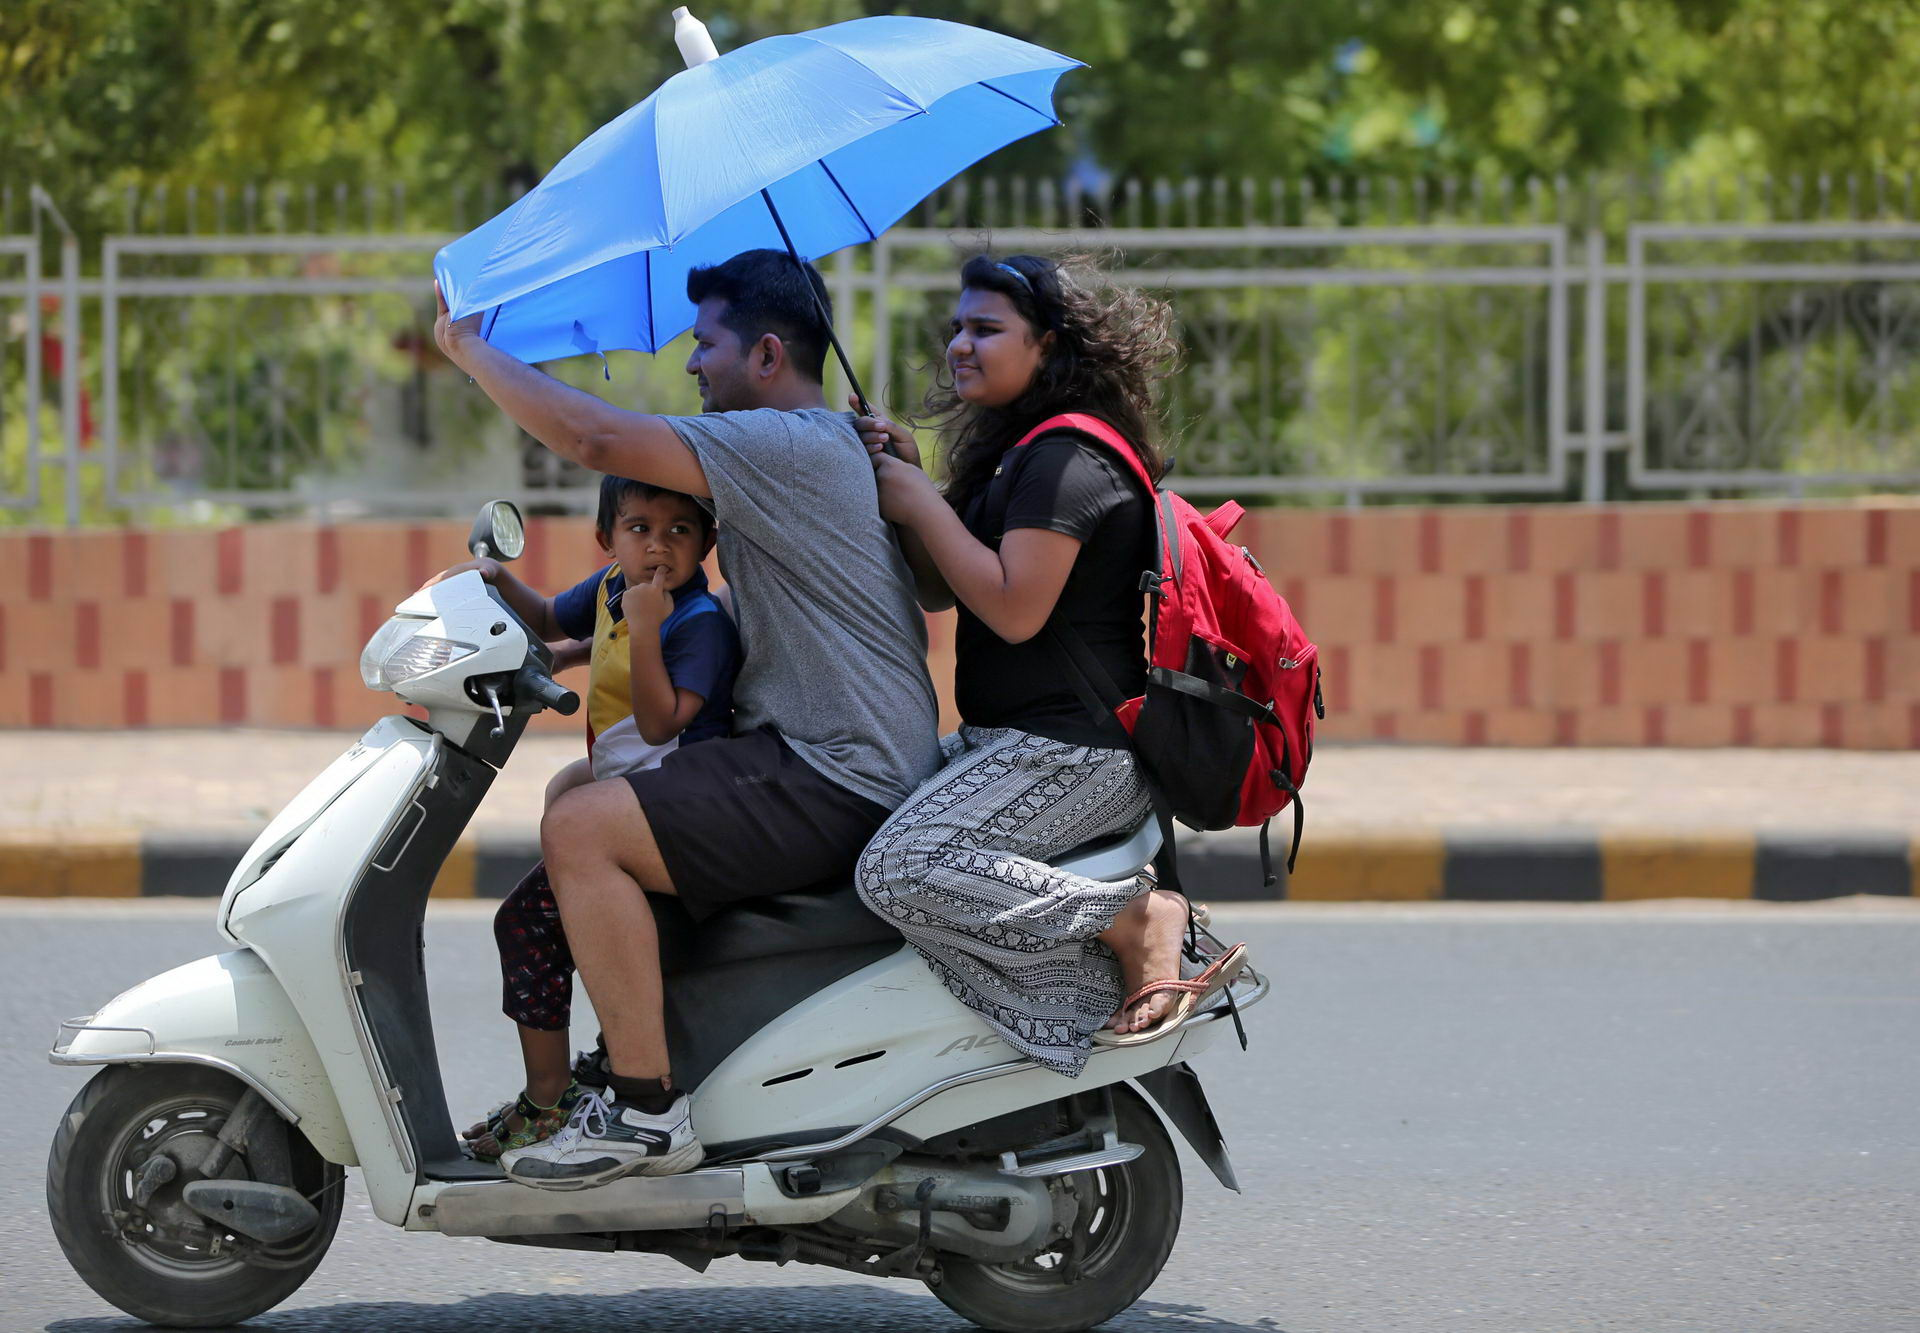 Scooterist covers himself with an umbrella to protect from heat on a hot day in Ahmedabad